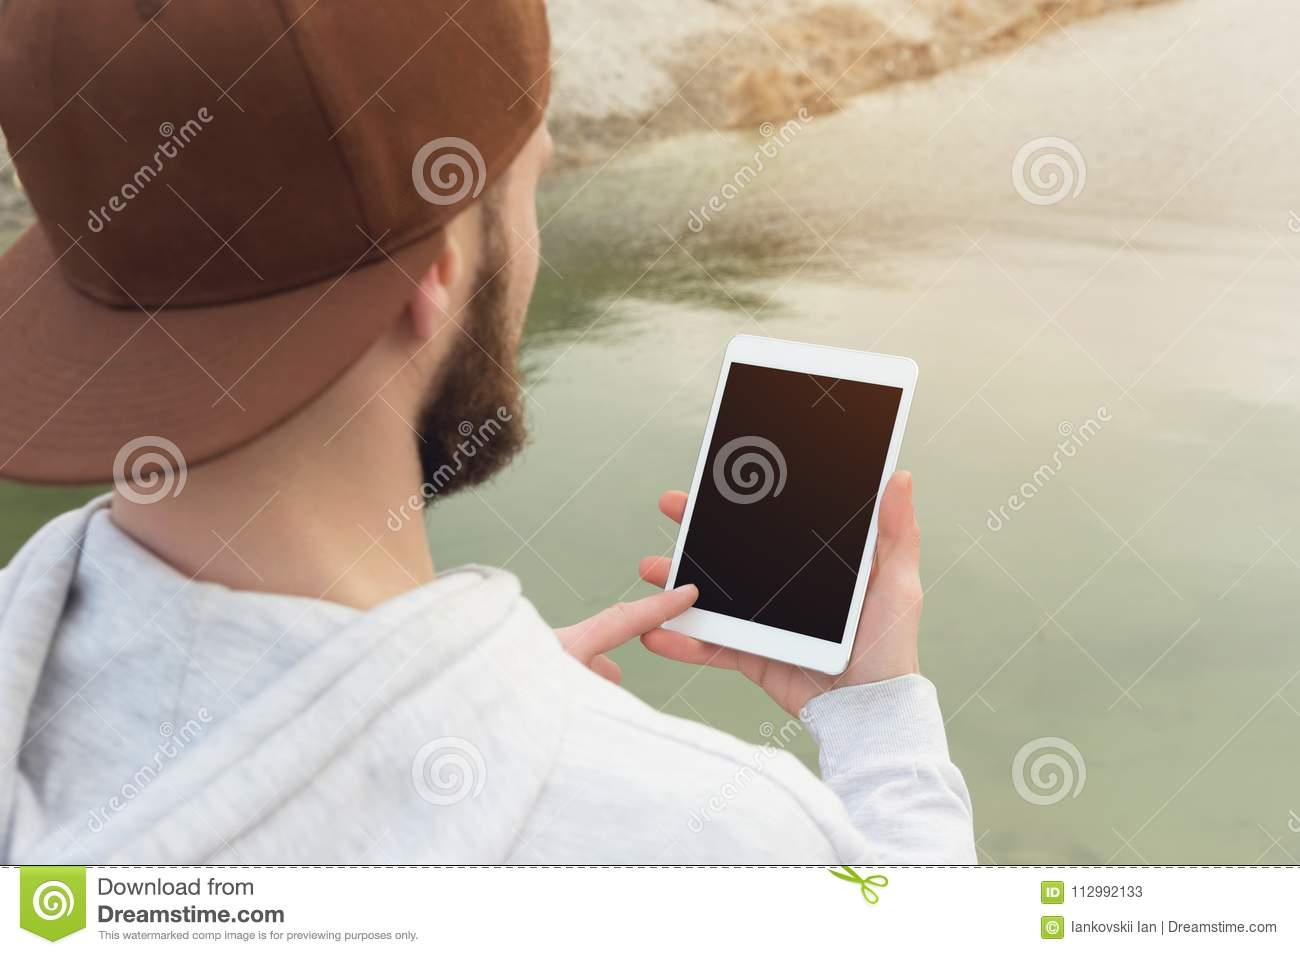 Close-up of a horde in a brown cap in the open air holds a white tablet pc in his hands. A bearded man looks at the